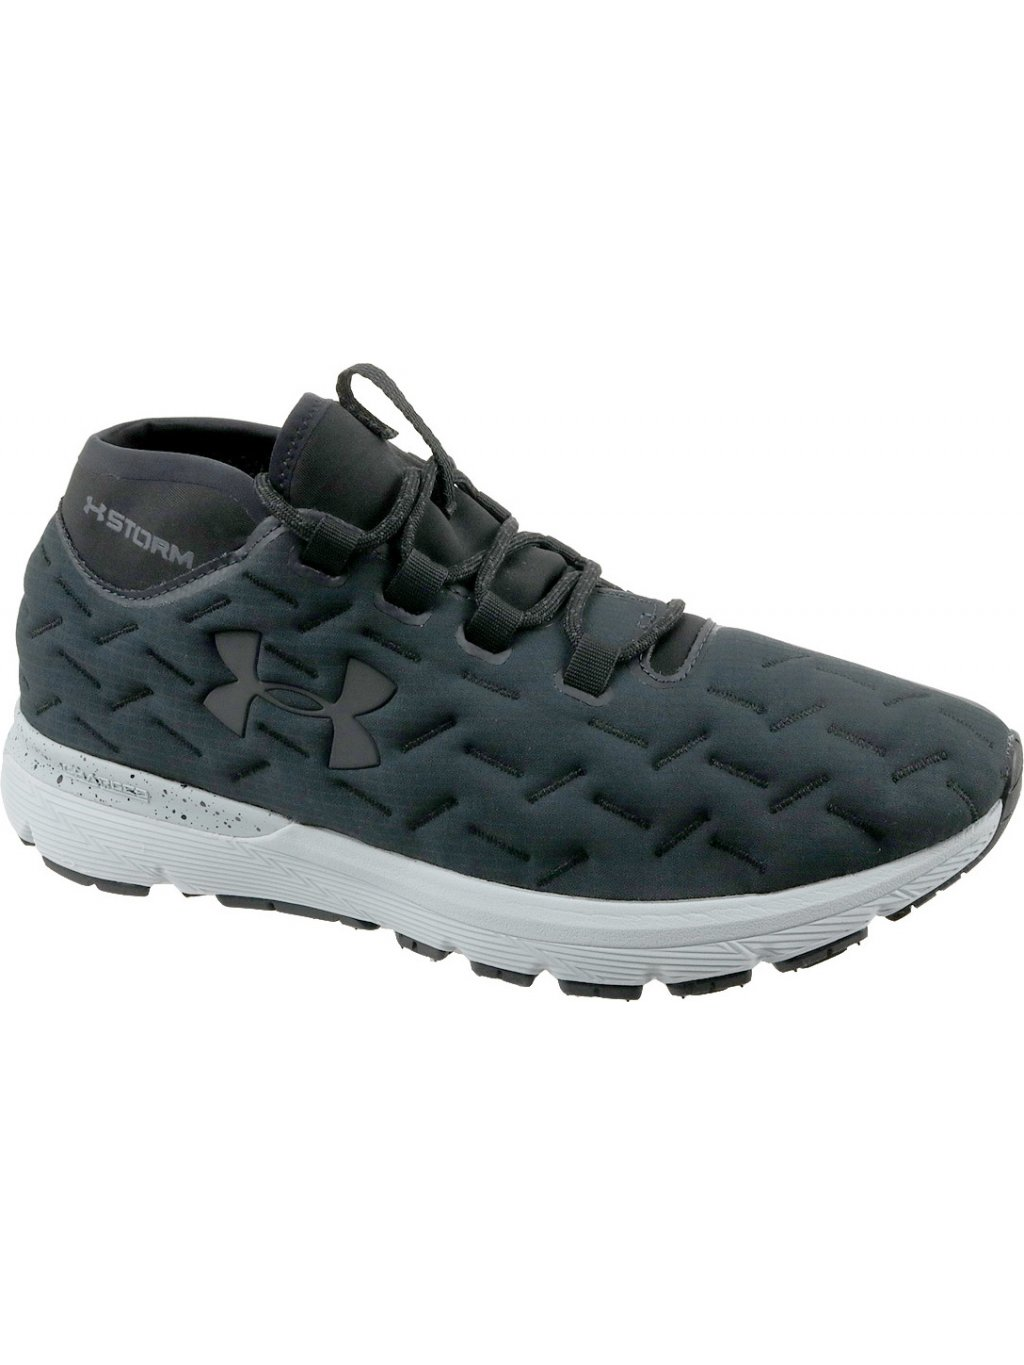 UNDER ARMOUR CHARGED REACTOR RUN